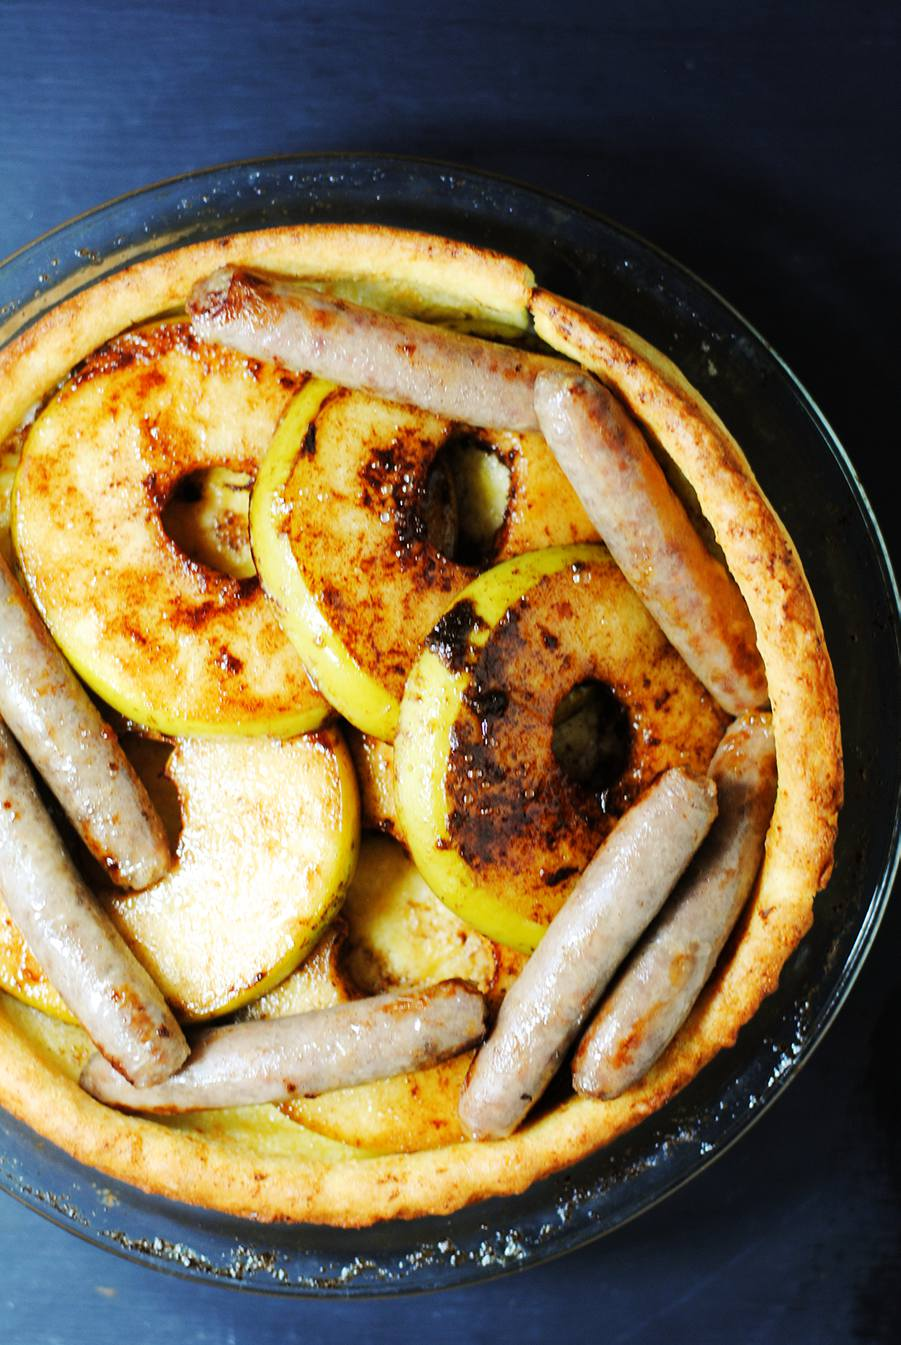 popover with apples and sausage